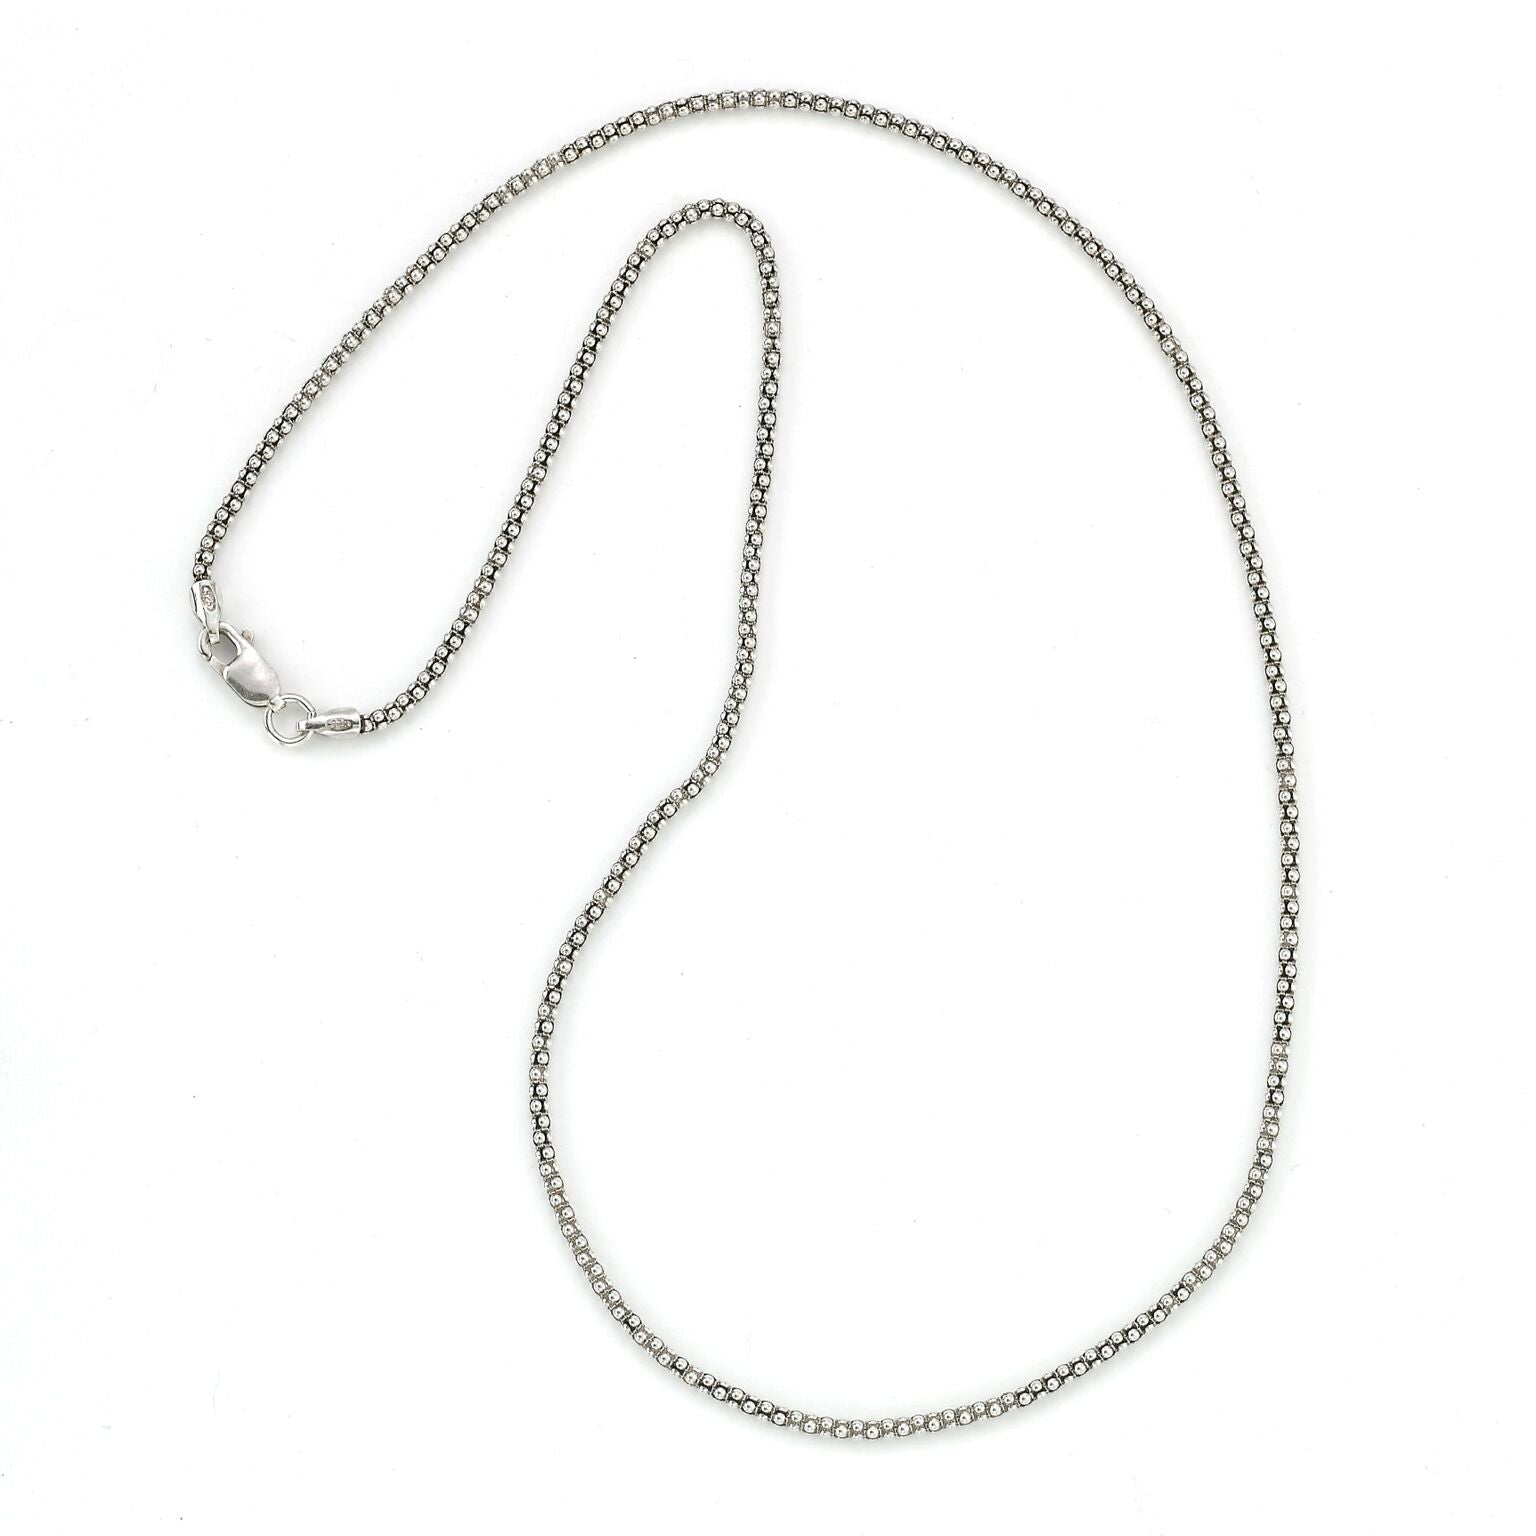 Popcorn Chain, 24 Inches, Oxidized Sterling Silver